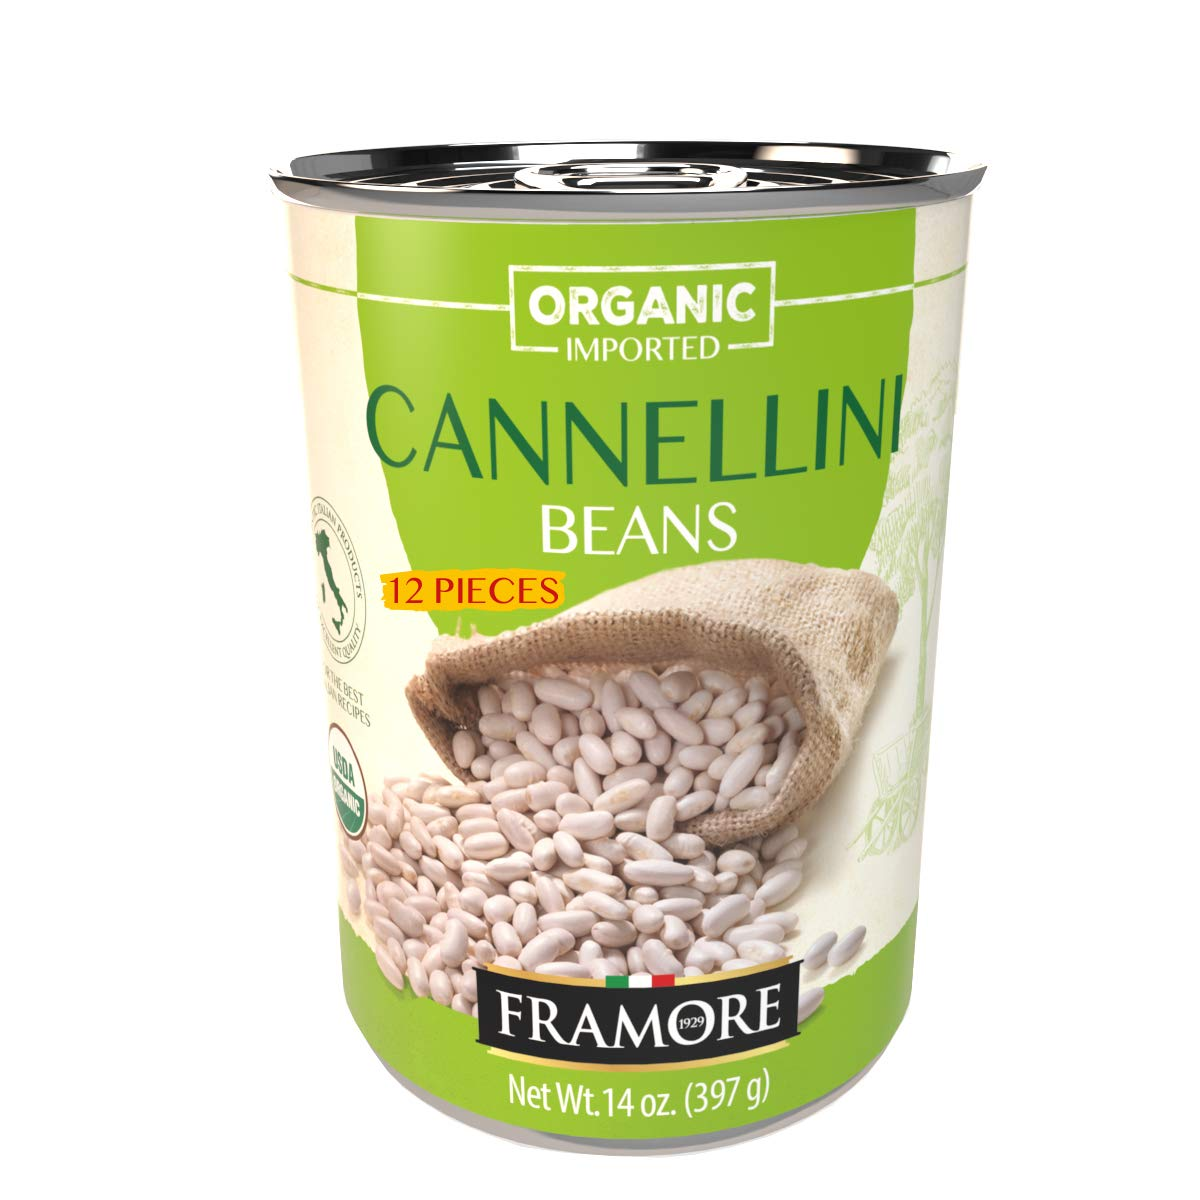 FRAMORE Imported Authentic Italian Organic Popular Japan Maker New overseas Cannellini Canned Whi